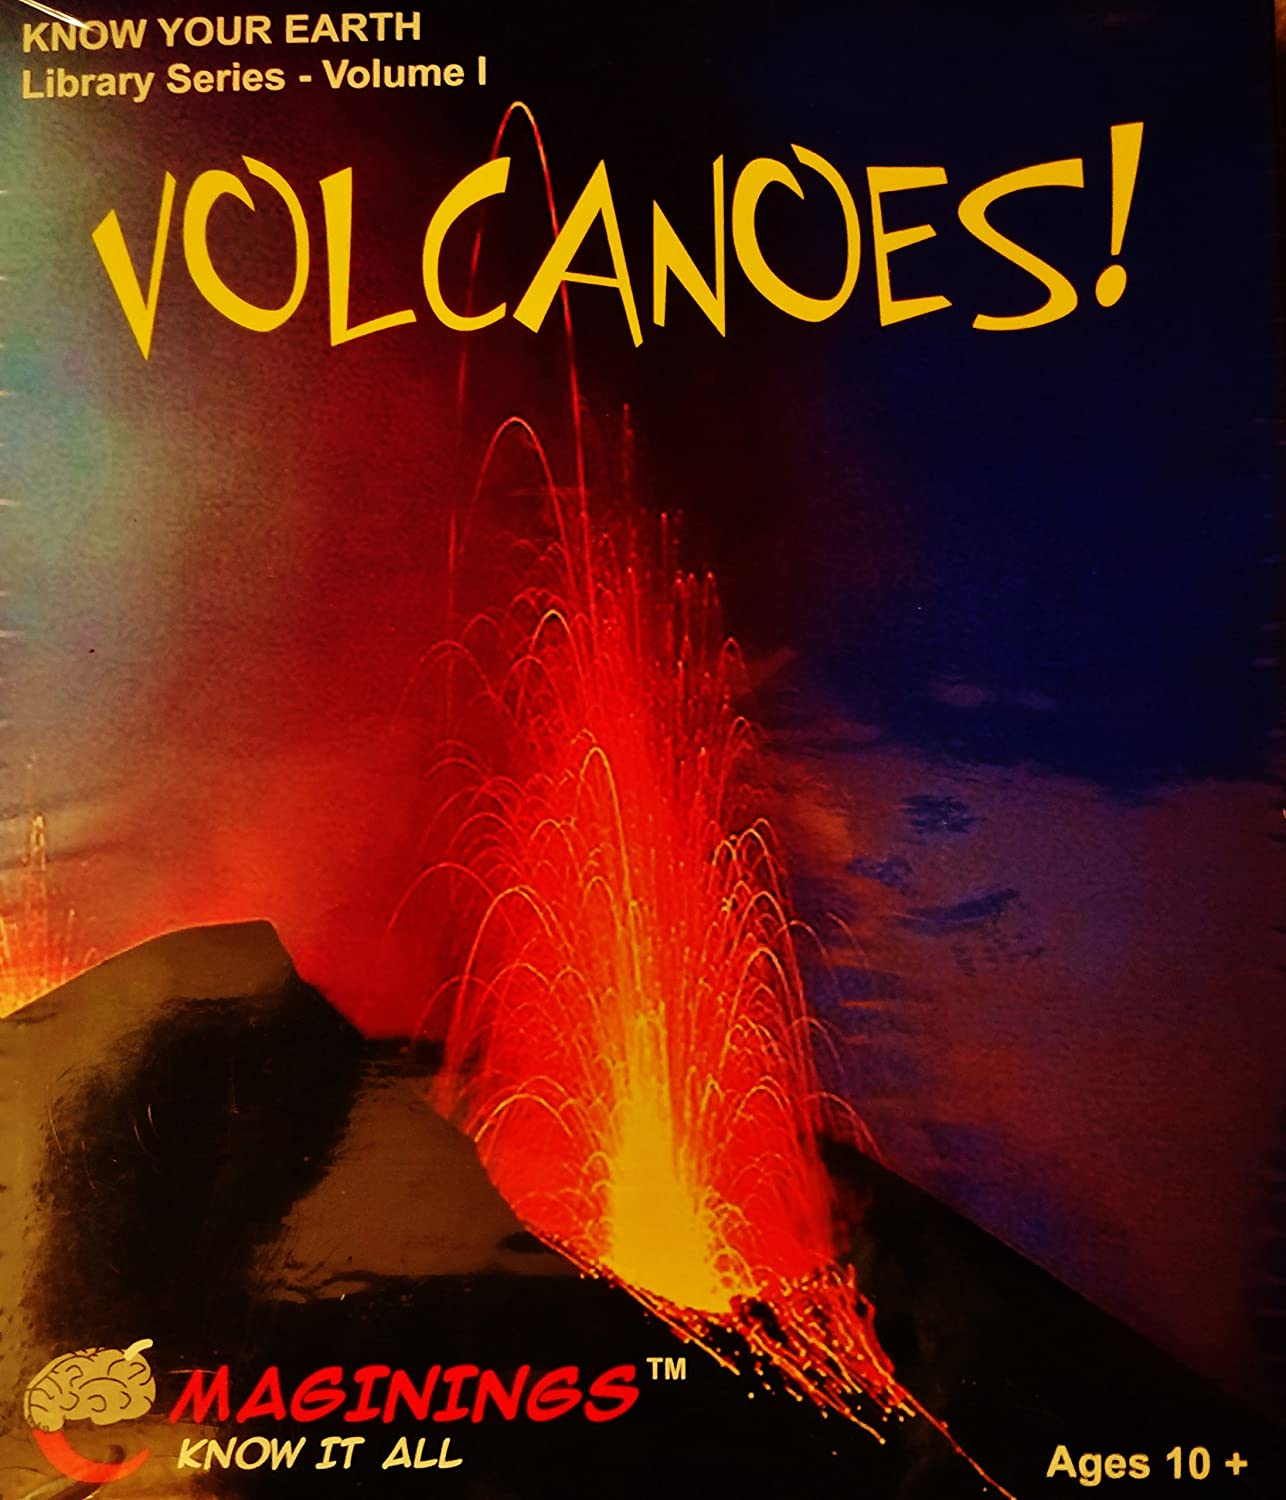 Volcanos! Know Your Earth Library Series Volume 1 (輸入版) B000FKGFZE Parent